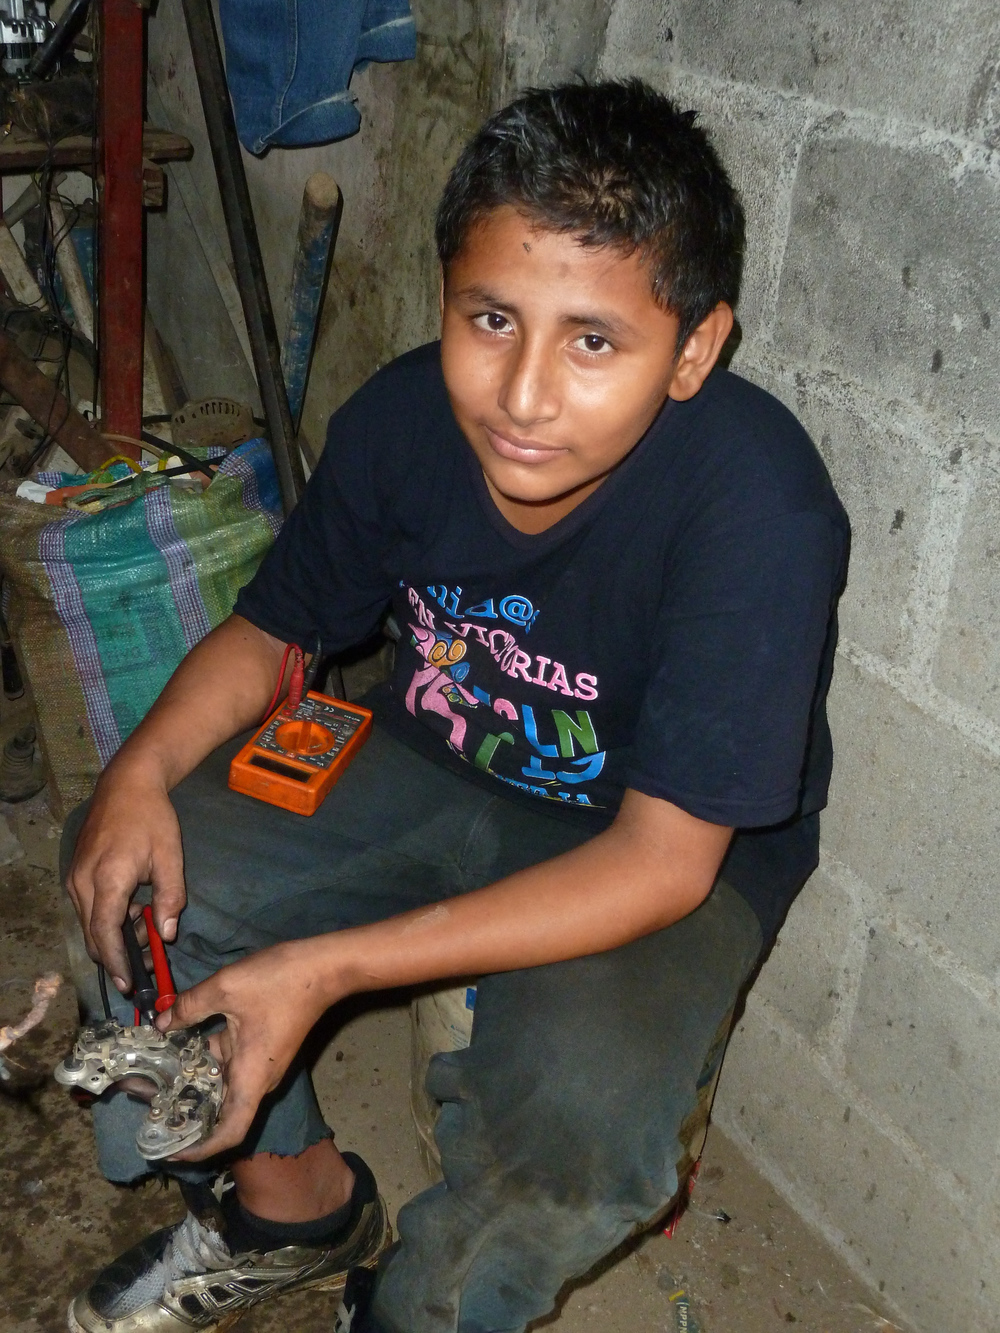 Dayani's son Gabriel learning car electronics at a shop in Managua (2014). Photo by Douglas Haynes.